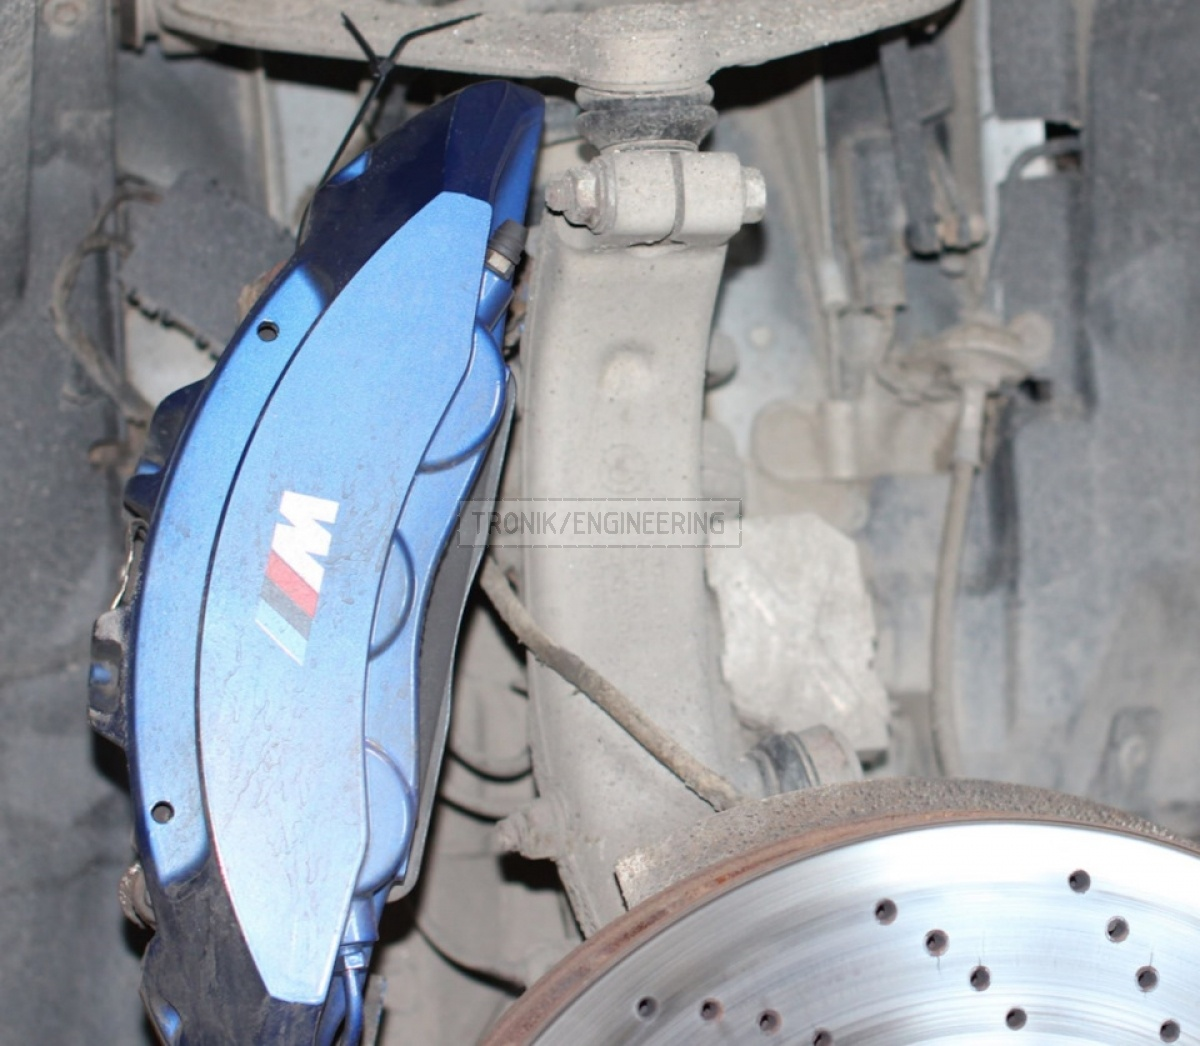 Unscrew radial munting screws & pull out brake pads & suspend caliper on plastic fixture